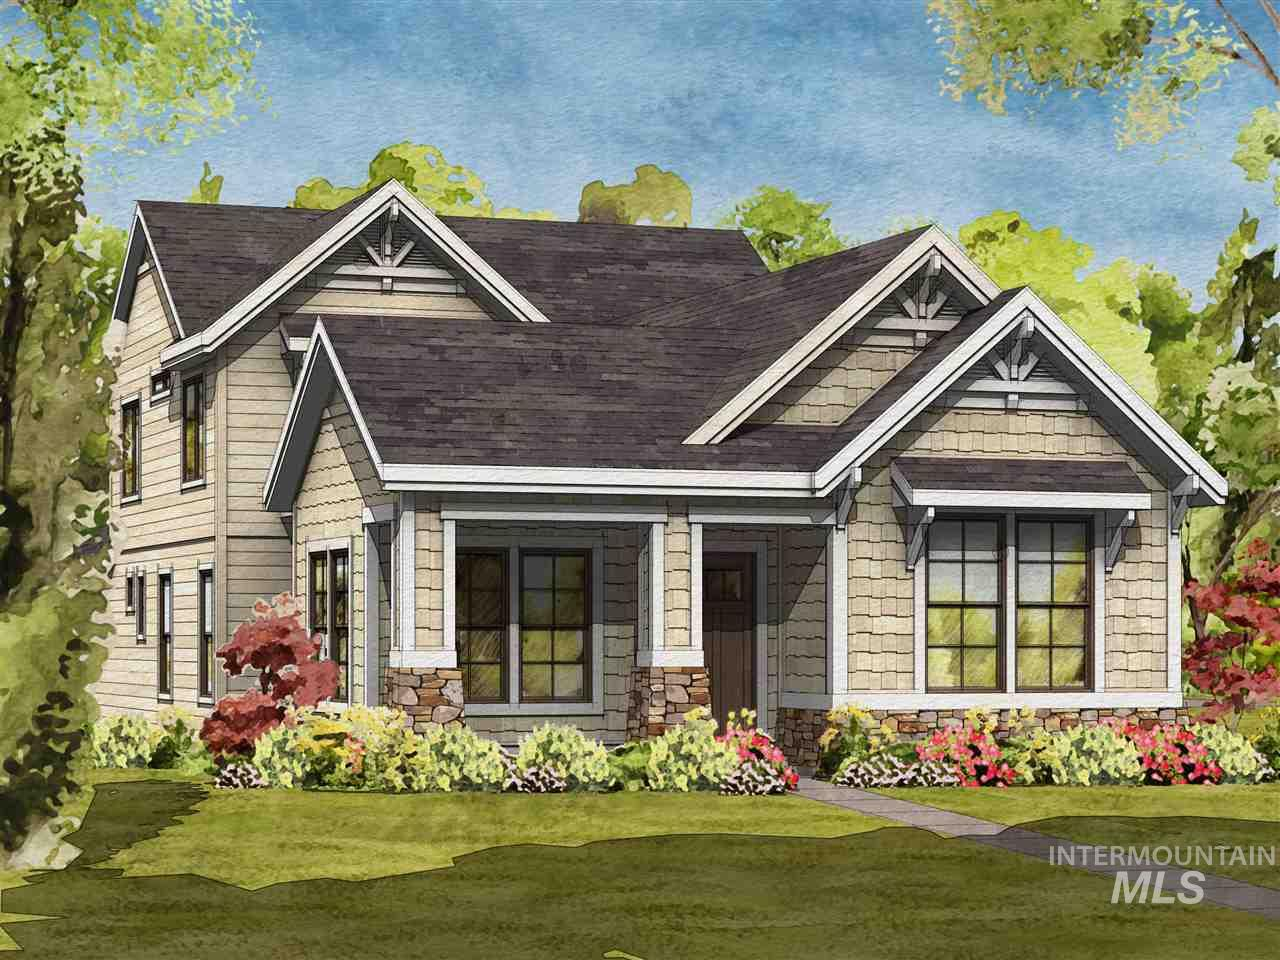 The Summer Sun by Brighton Homes, in the 55+ Cadence Community. This spacious two story home features a beautiful main level master with walk-in shower and spacious closet. Retreat to the den to relax with a book or catch up on your favorite hobby.The kitchen features custom cabinets, a walk-in pantry and a stainless steel Bosch appliance package.The open layout makes this home perfect for entertaining. 100% Energy Star Certified. Interior specs shown are subject to change prior to completion date.